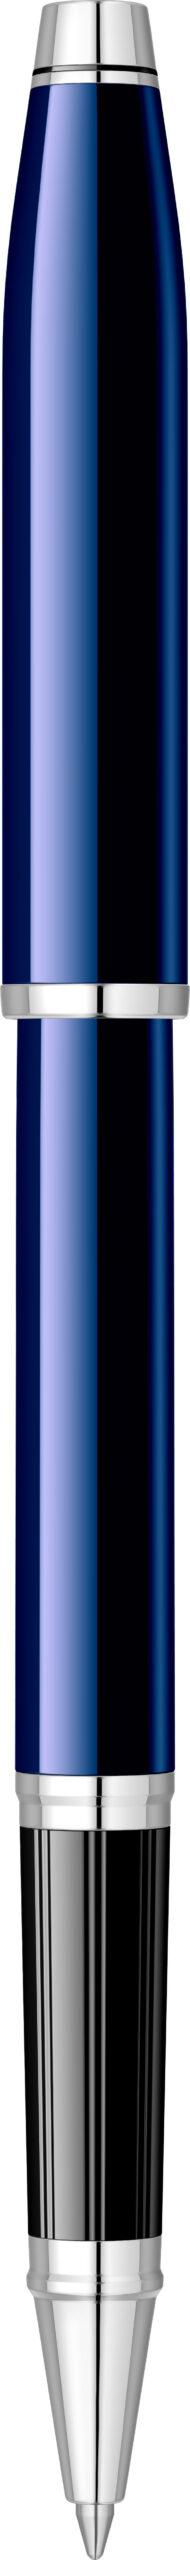 Translucent Blue Lacquer RT Roller - Cross 2